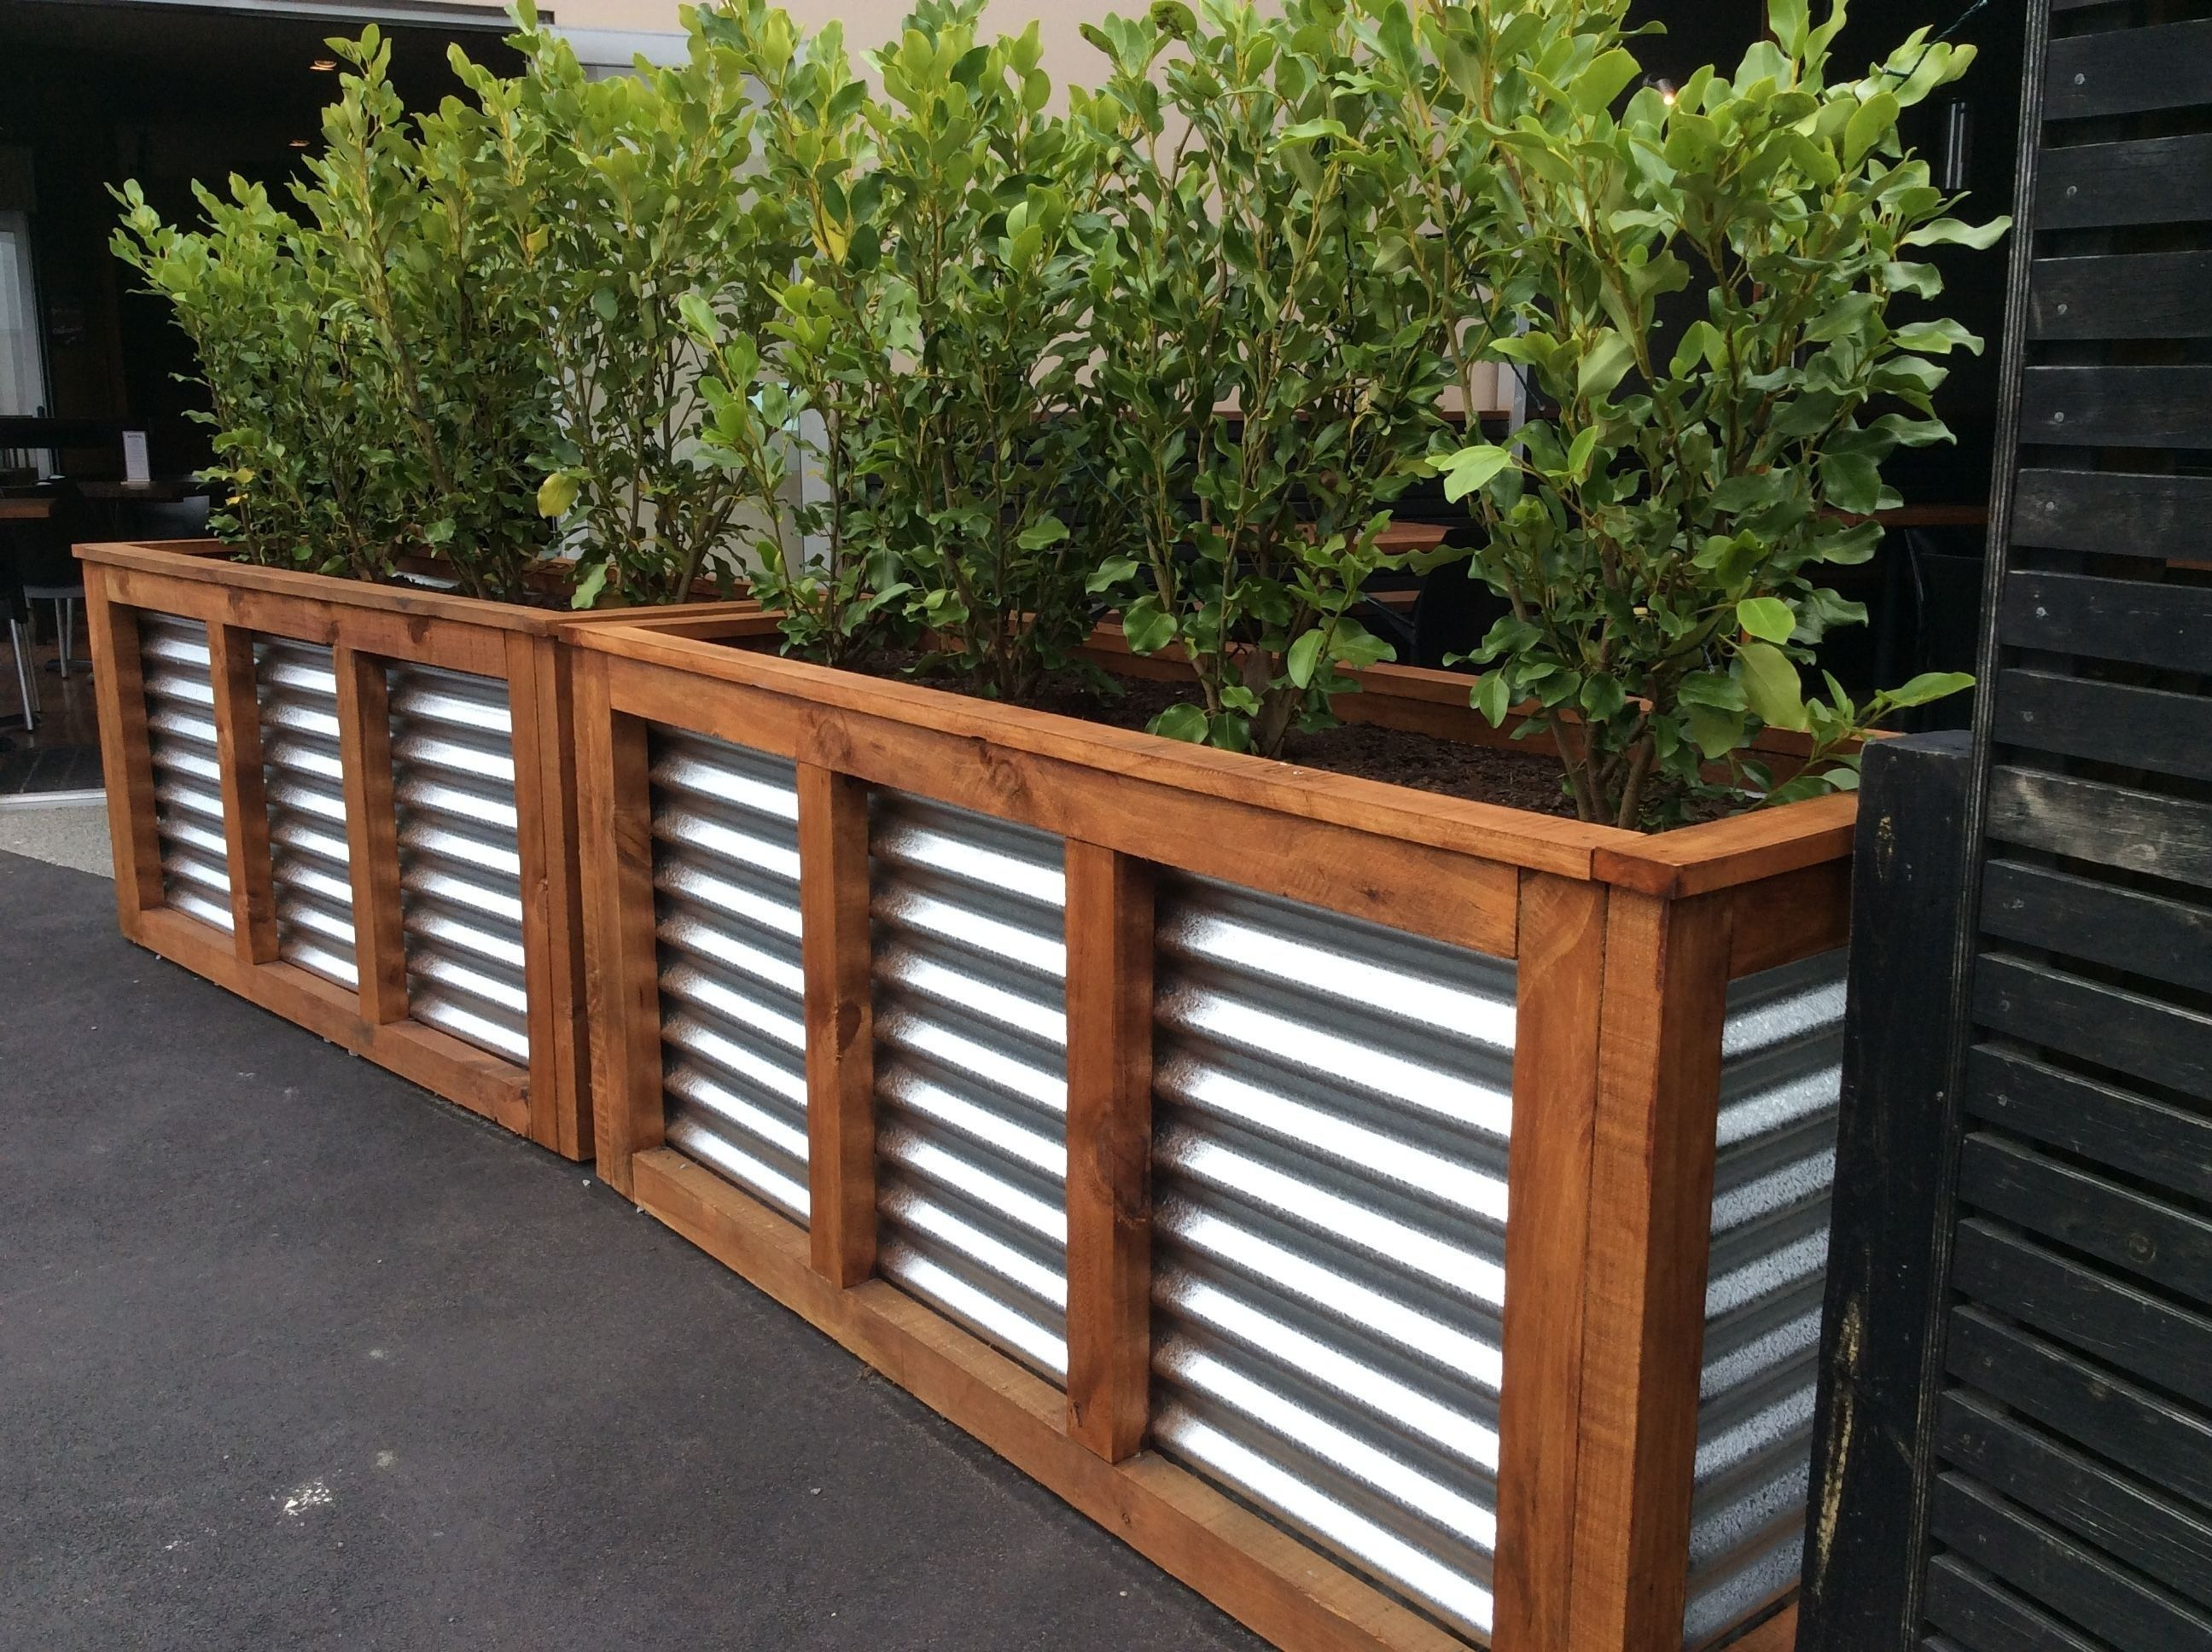 Amazingly Creative Long Planter Ideas For Your Patio 33 Diy Planters Outdoor Long Planter Patio Planters